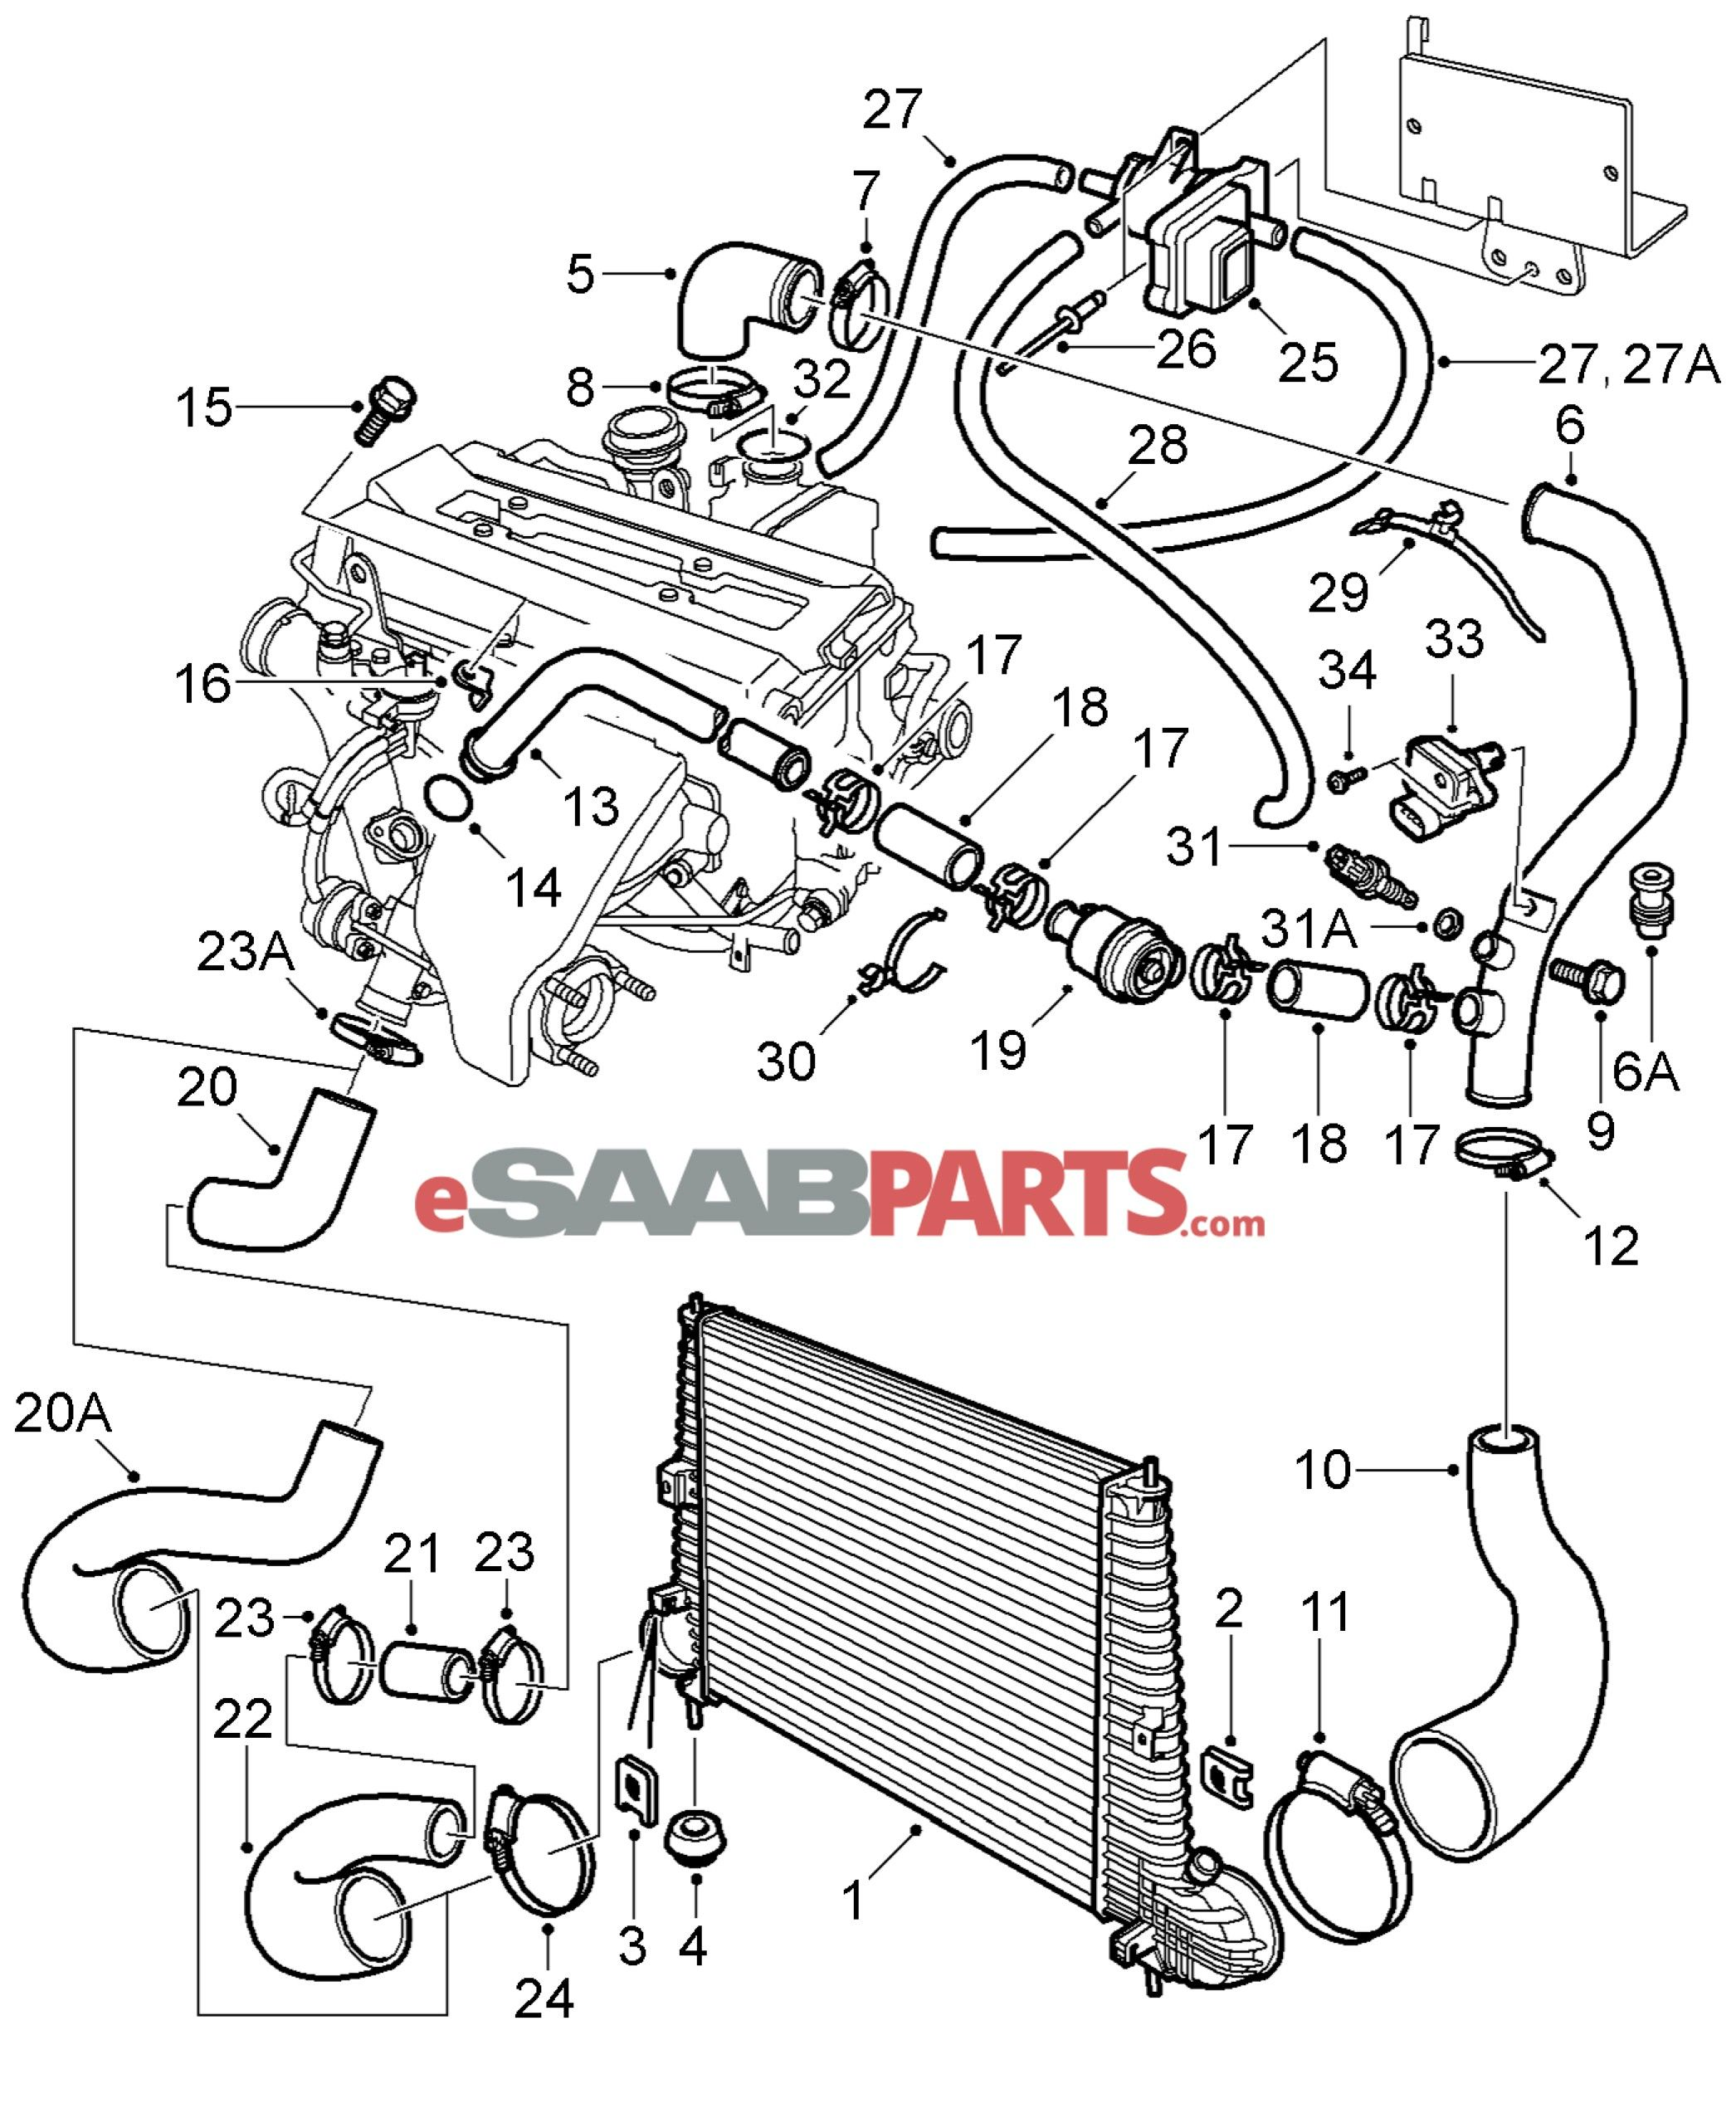 [FPWZ_2684]  DIAGRAM] 2004 Saab 9 5 Wiring Diagram FULL Version HD Quality Wiring Diagram  - FUSPORN5990.ILCASTAGNETOAMATRICE.IT | 2004 Saab Engine Diagram |  | fusporn5990.ilcastagnetoamatrice.it